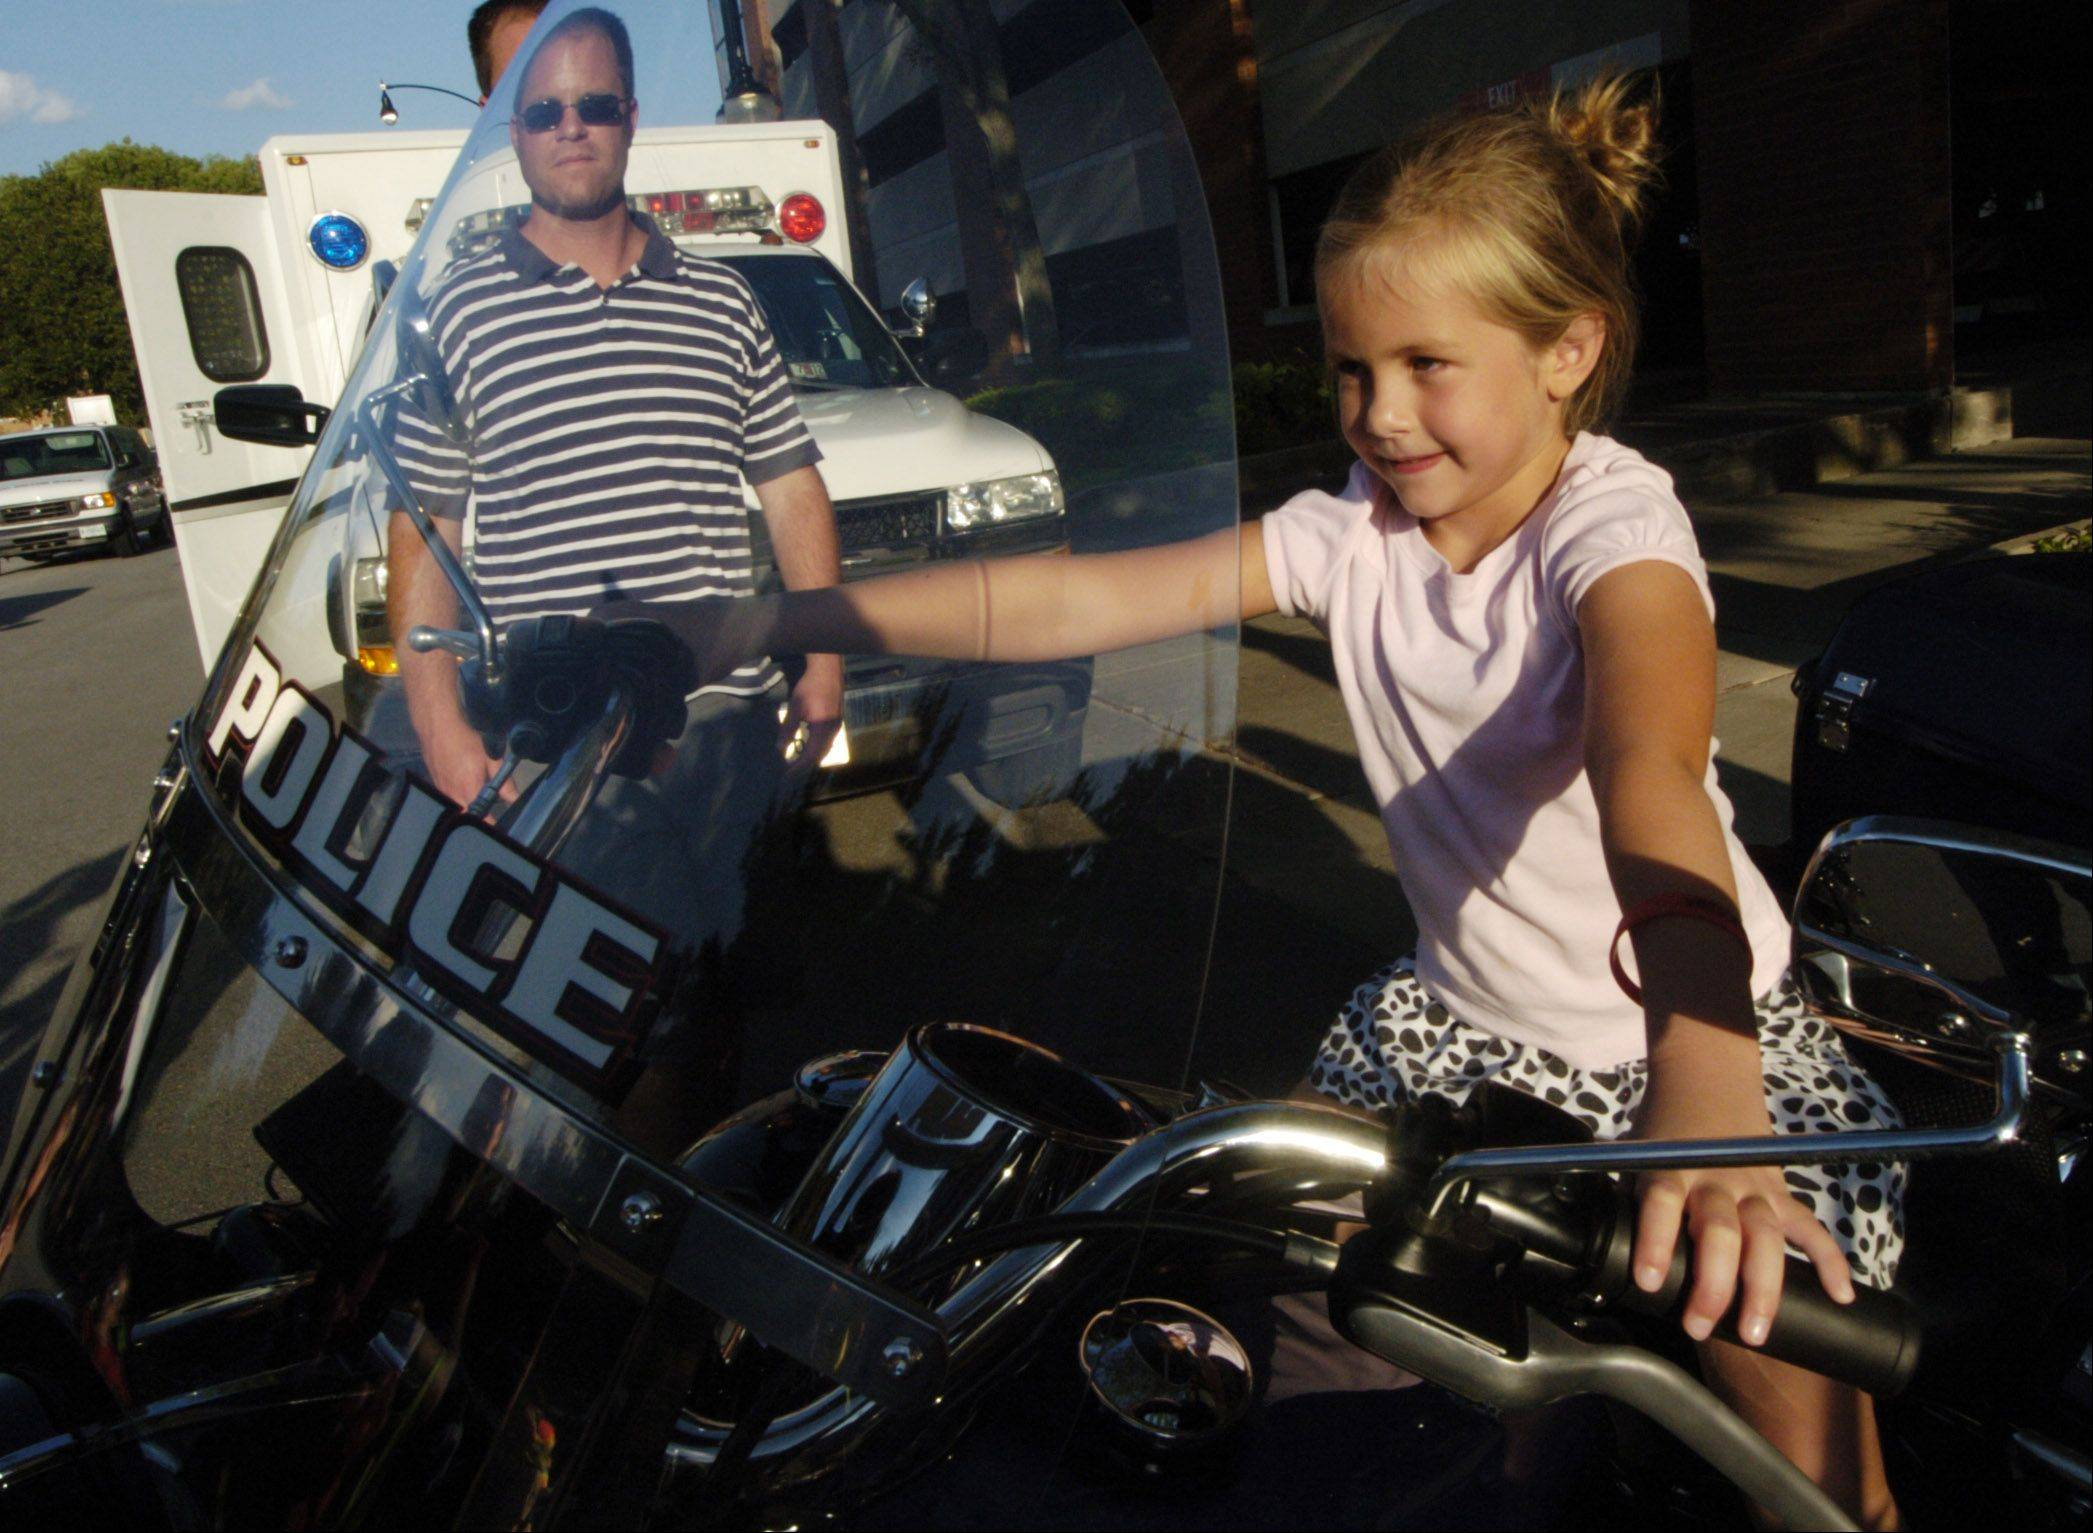 Annie Loring, 6, of Arlington Heights, tries the view from a police motorcycle while attending Tuesday's National Night Out with her family, including her dad, Kevin, at North School Park in Arlington Heights.